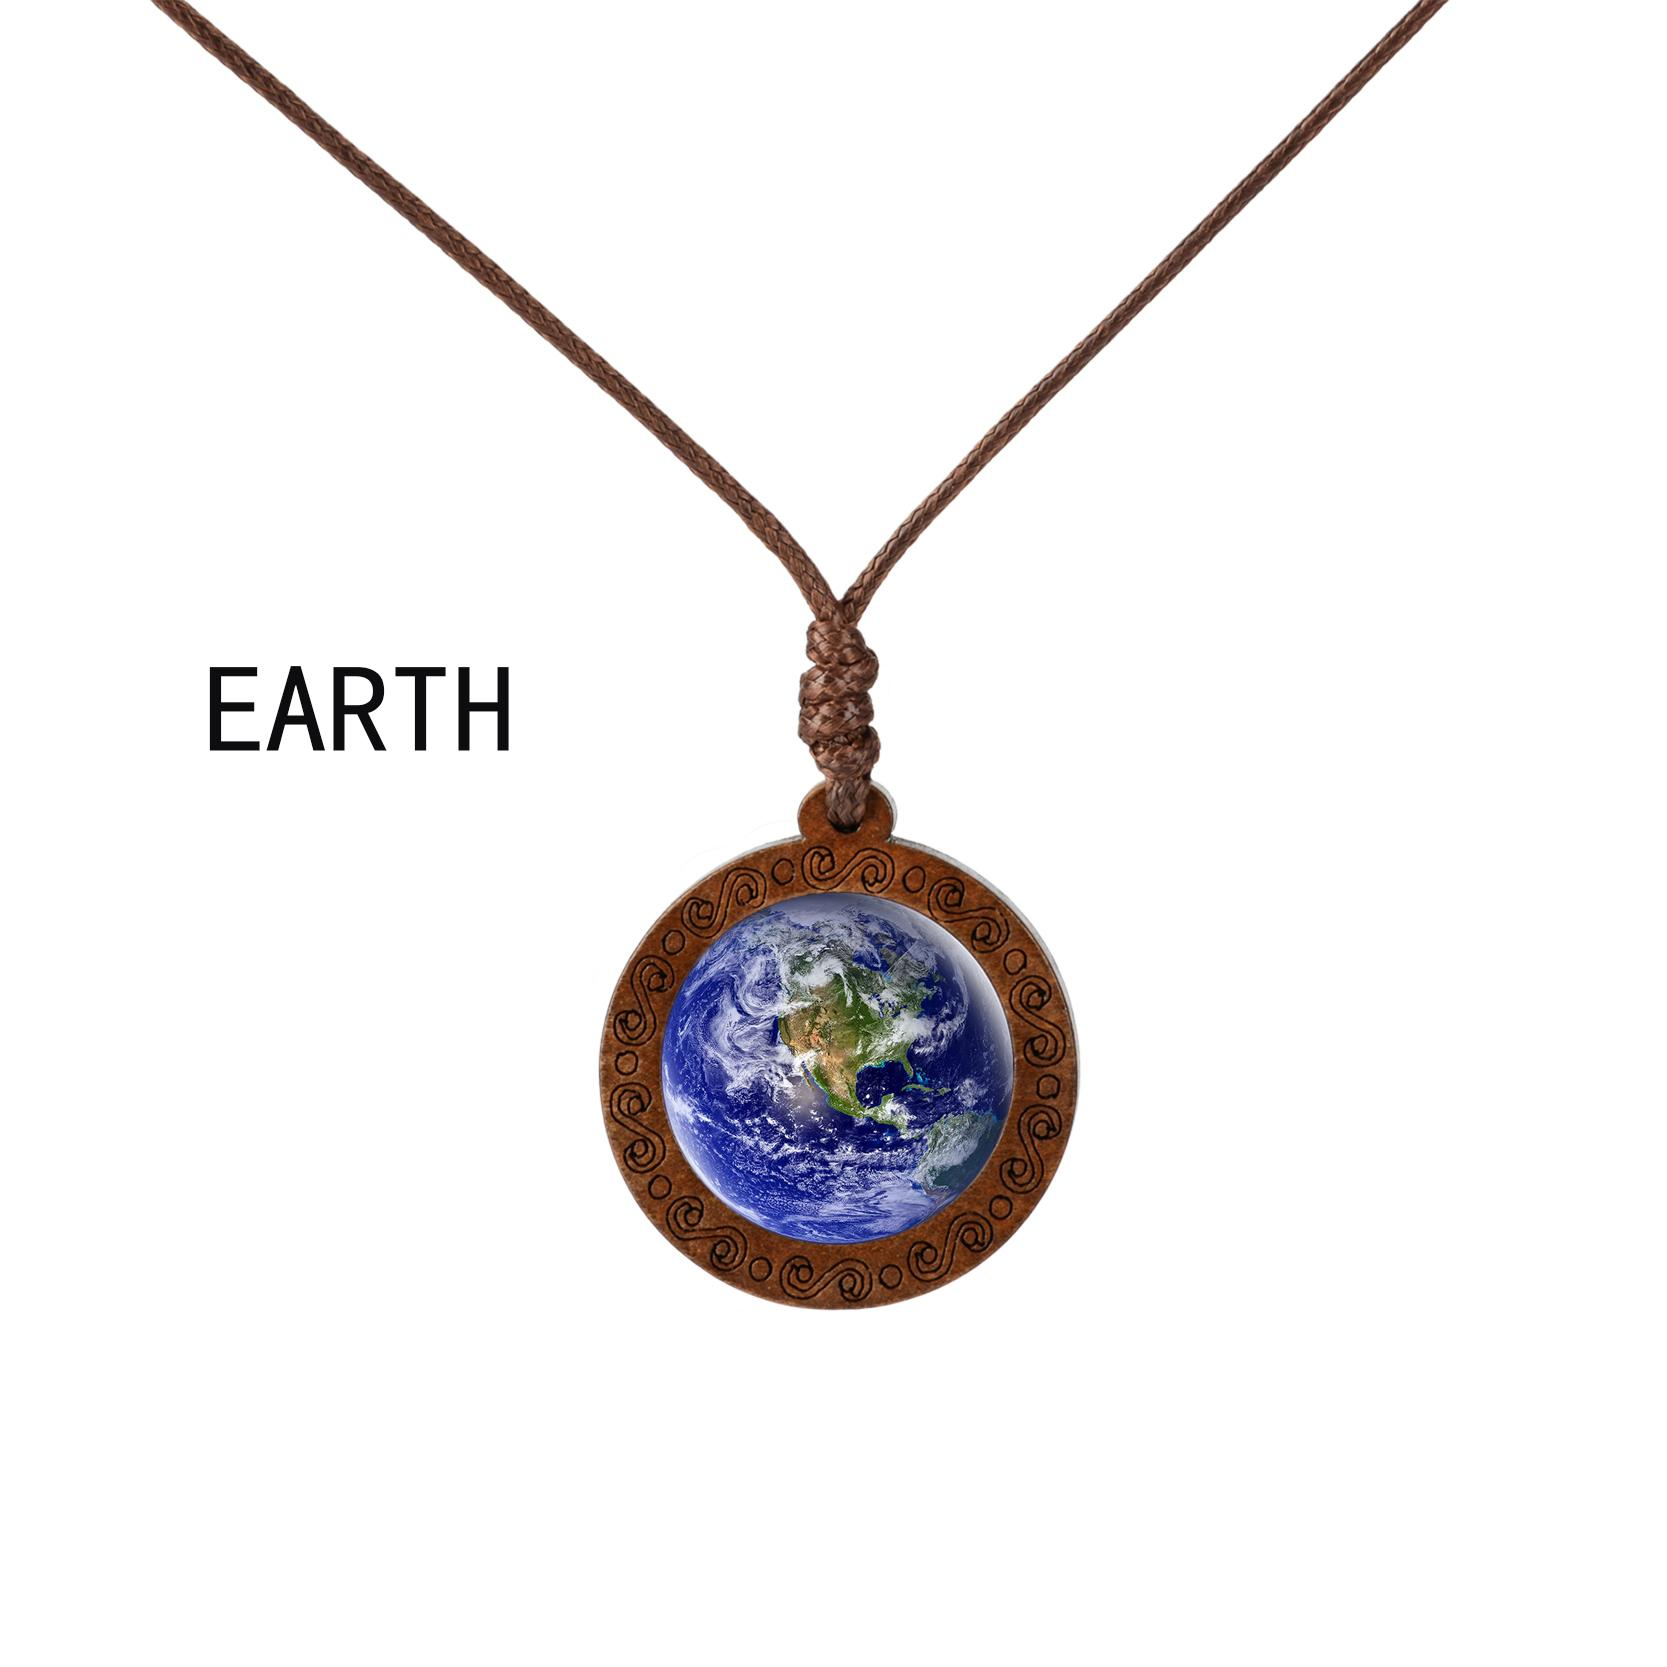 Planet Solar System Jupiter Earth Sun Necklace Vintage Wooden Pendant Glass Cabochon Jewelry Galaxy Necklace Gift